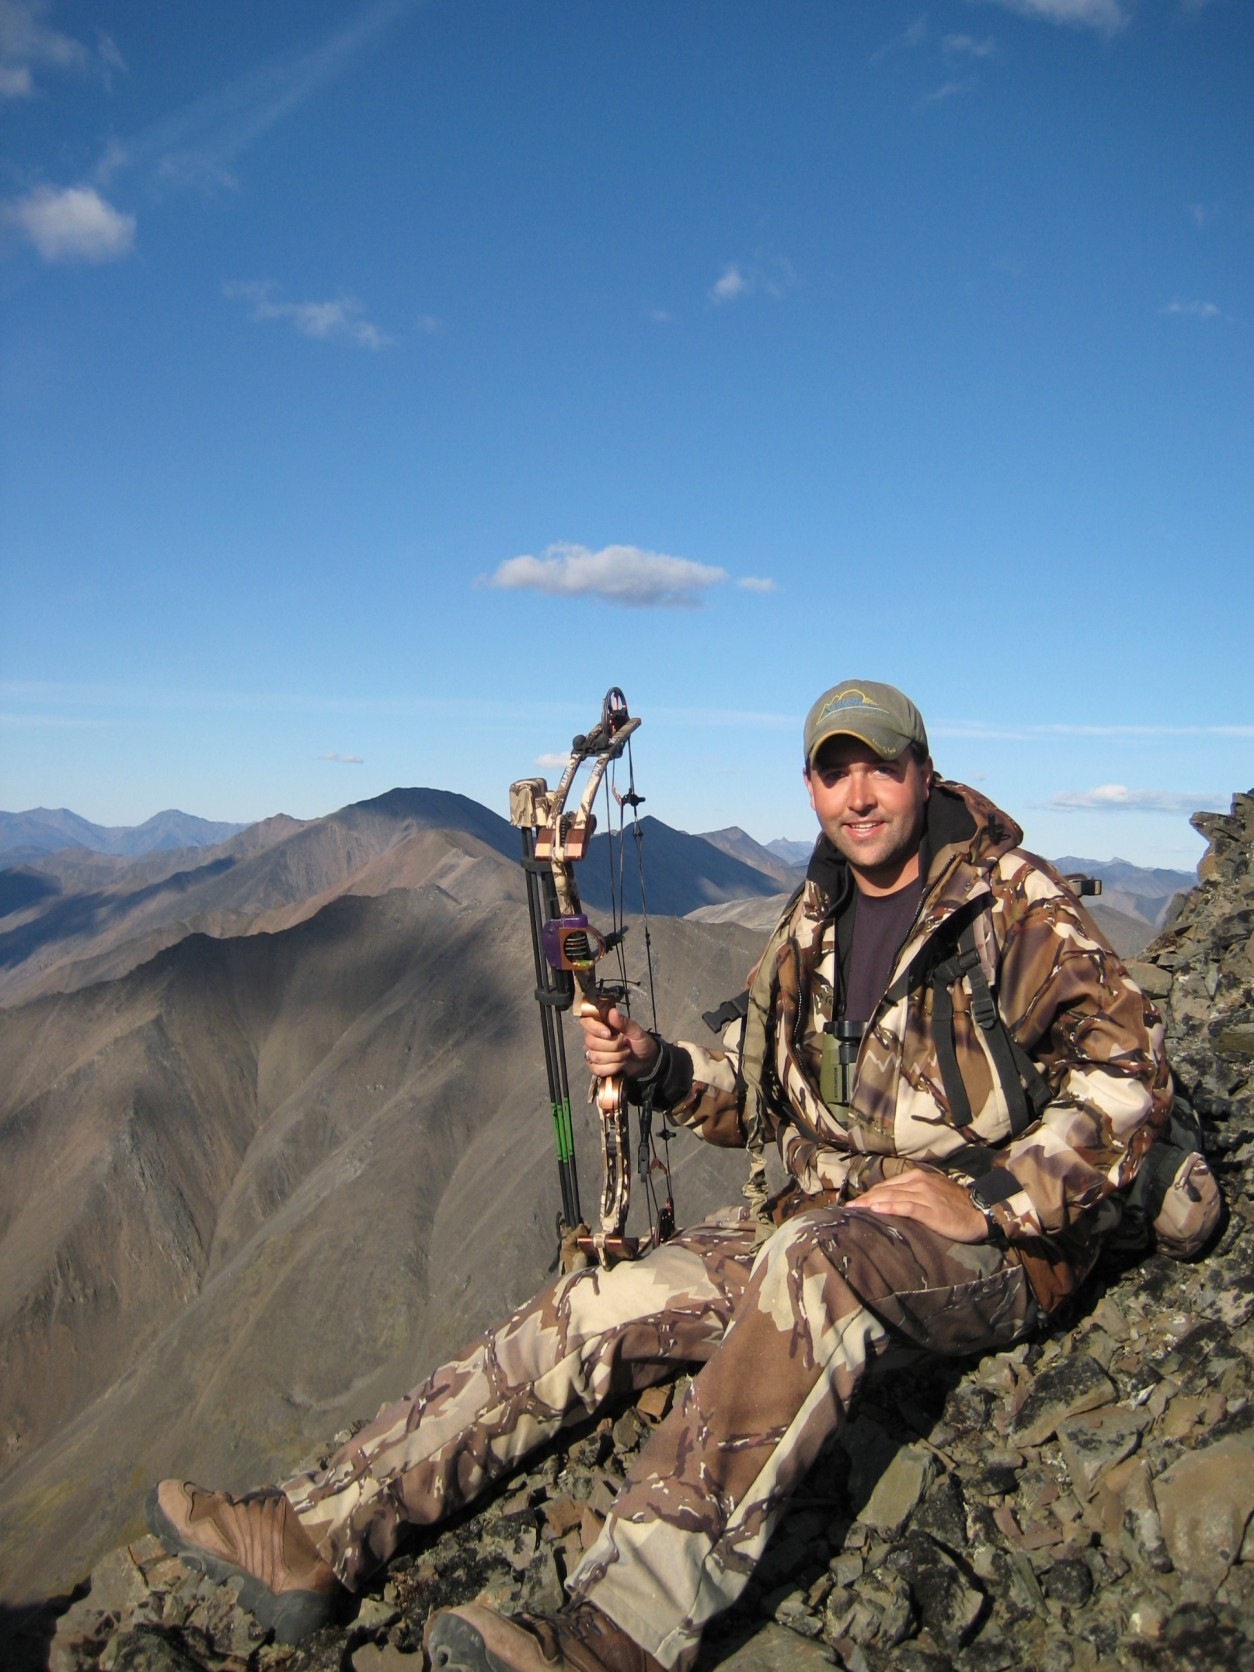 Drew in Alaska on a Dall Sheep hunt